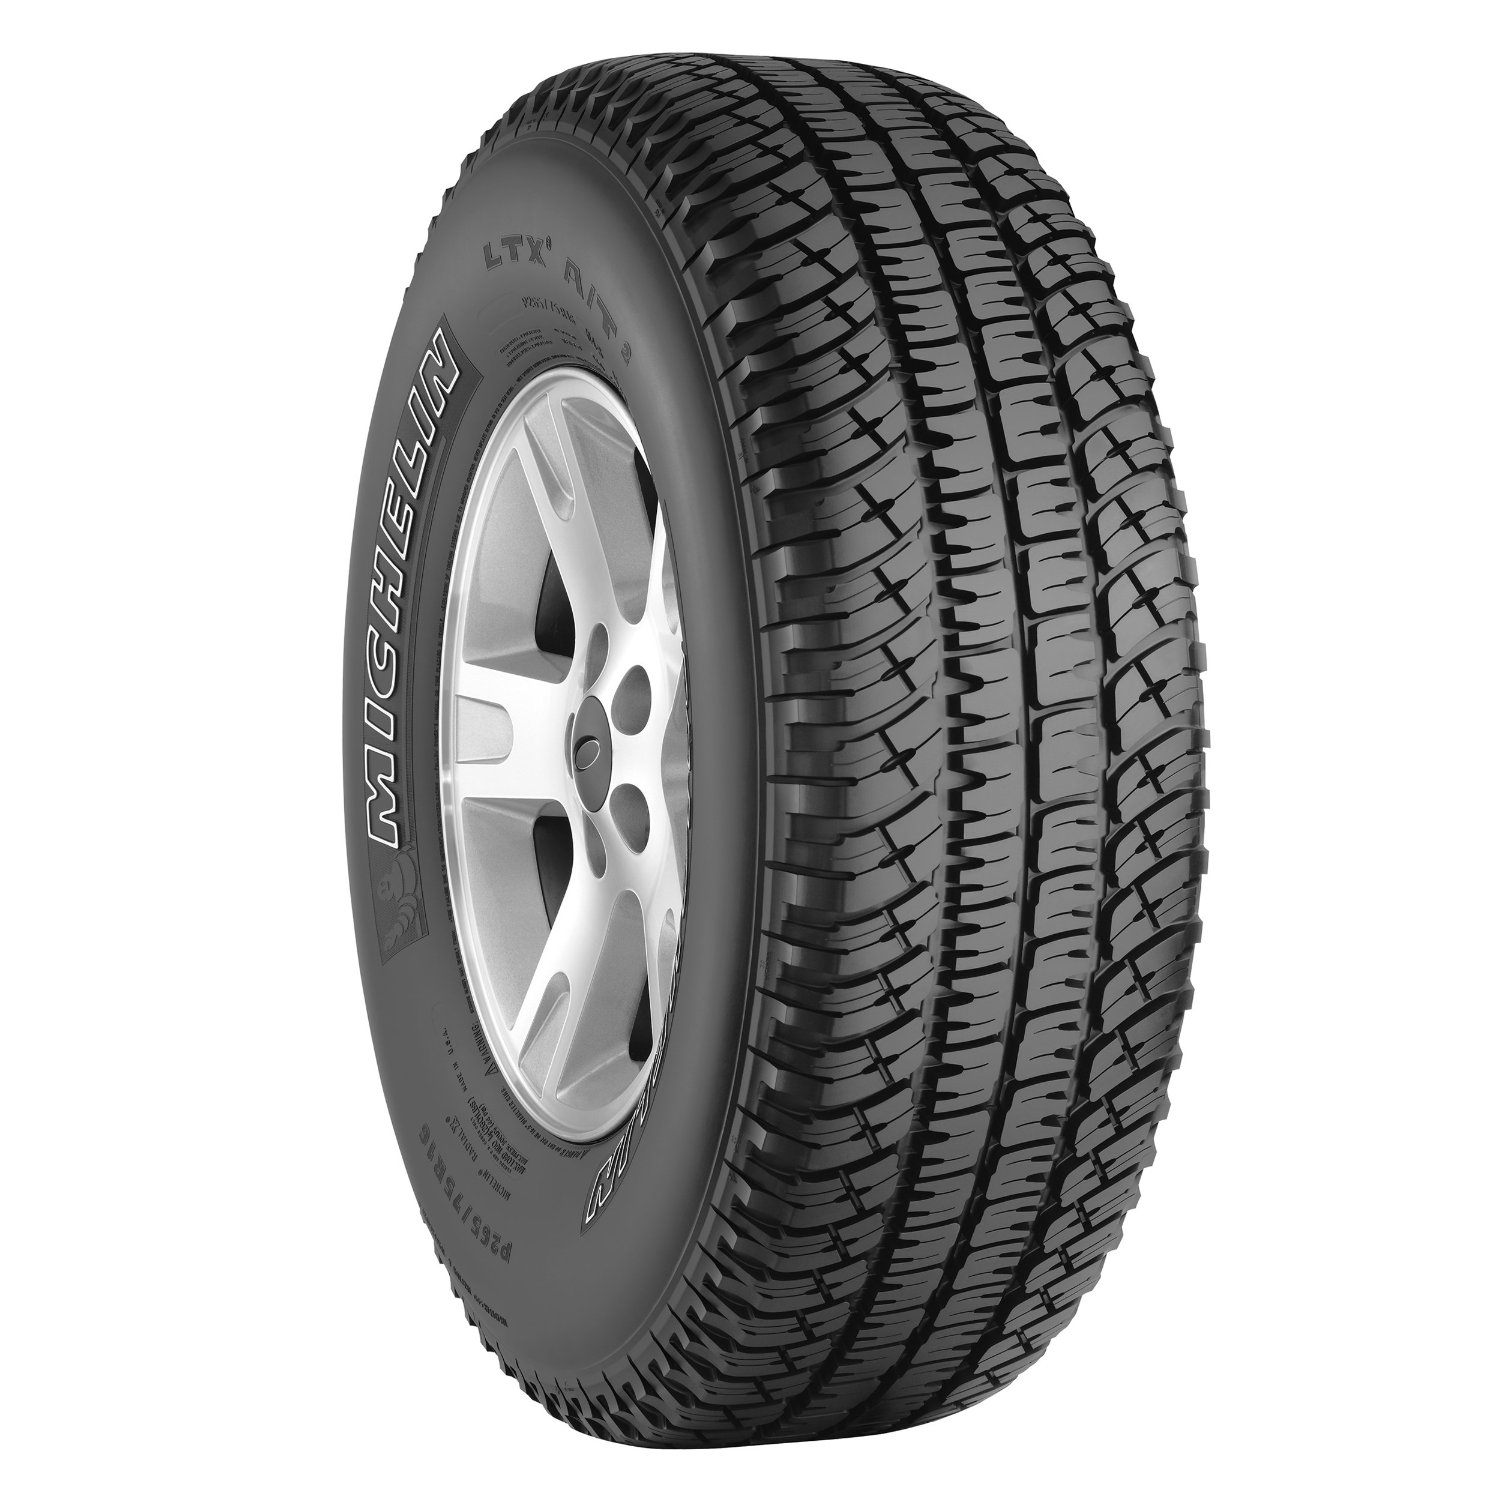 Michelin LTX A/T2 All-Season Radial Tire With Michelin's Comfort Control Technology